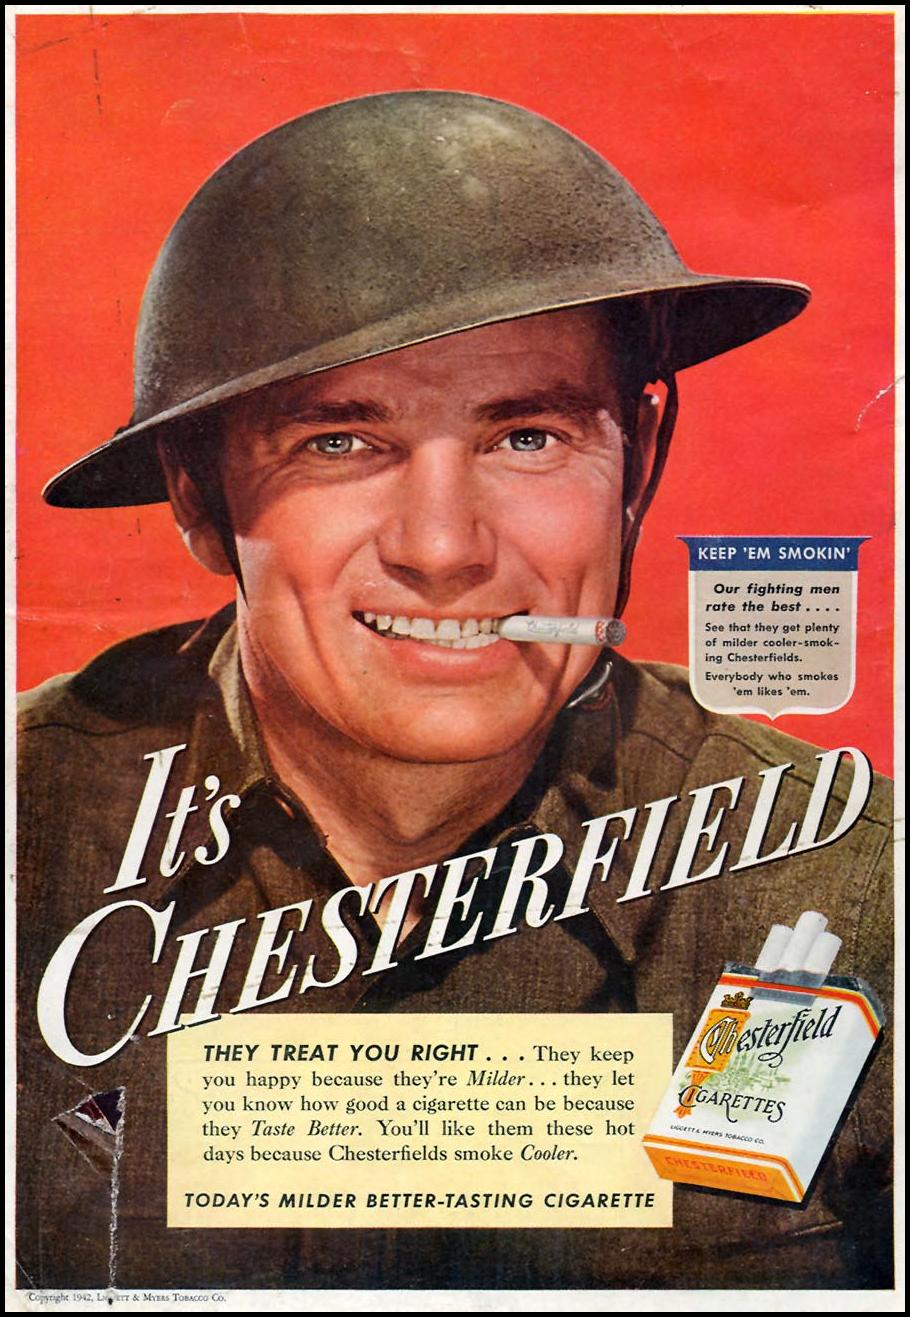 CHESTERFIELD CIGARETTES TIME 08/17/1942 BACK COVER